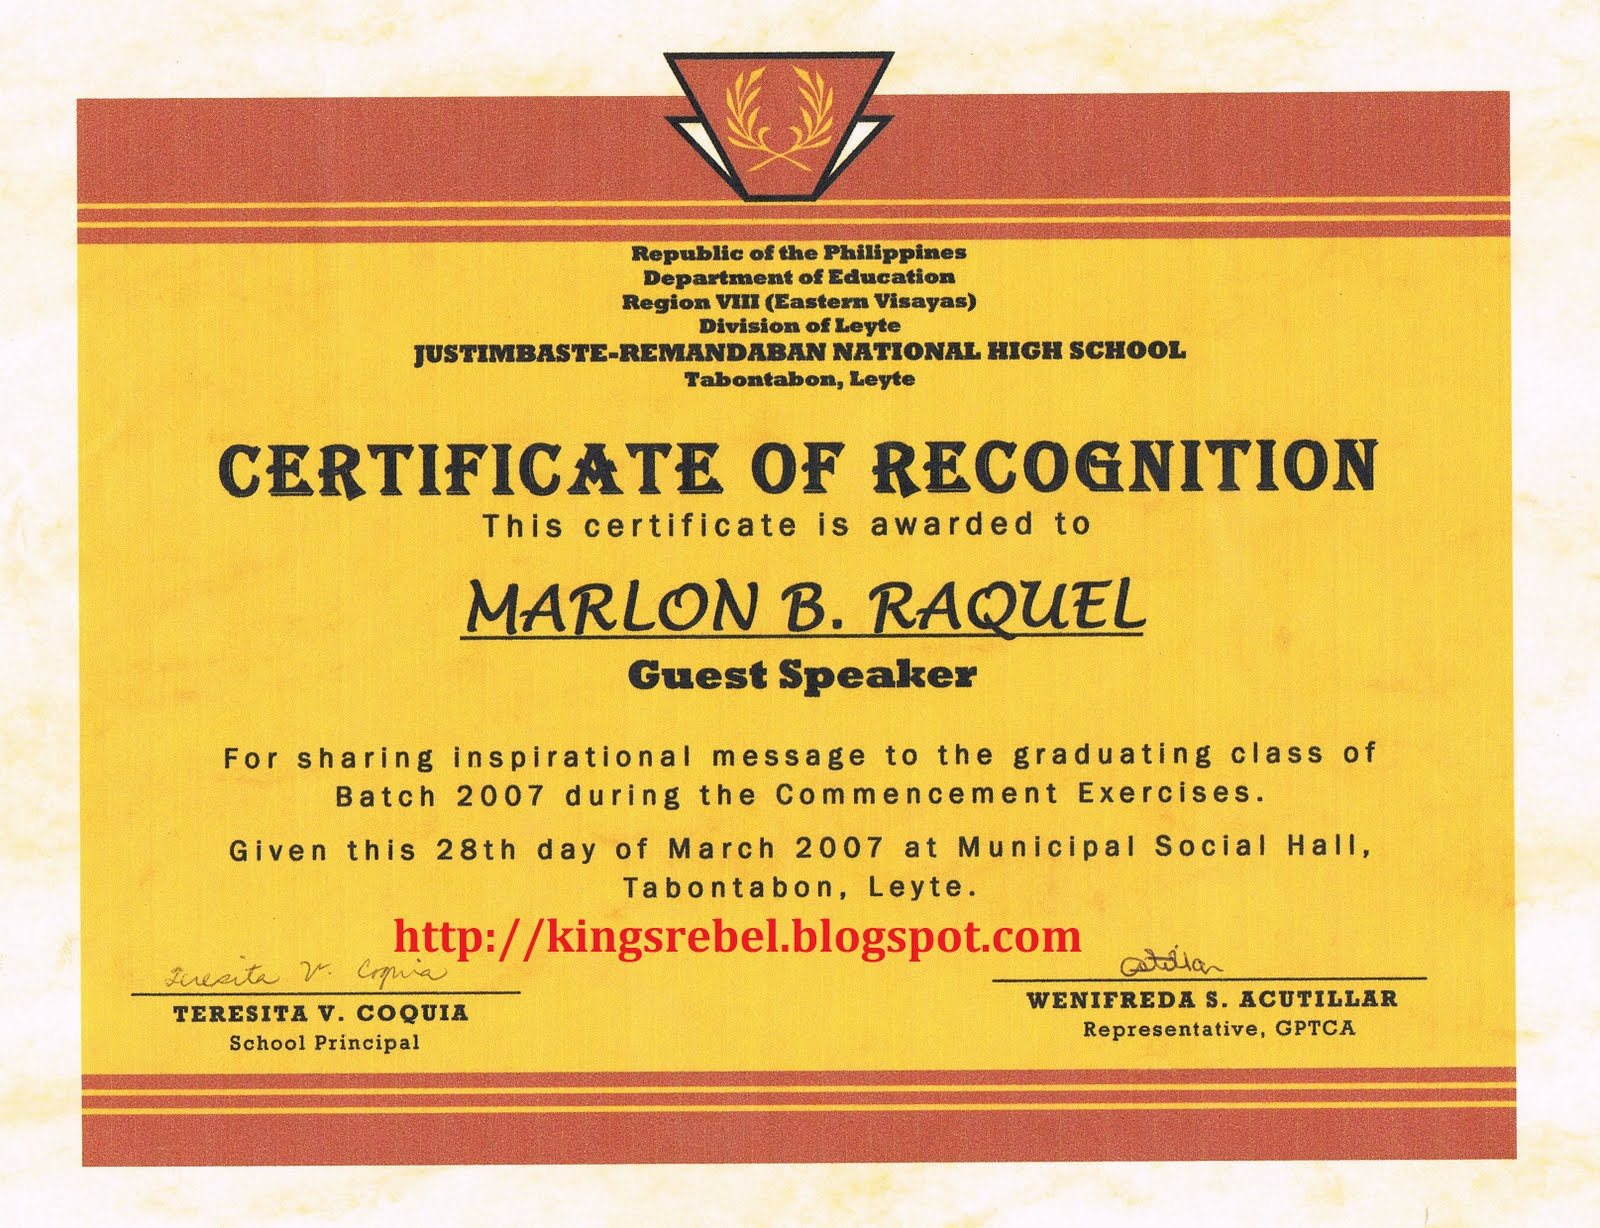 Tidbits And Bytes: Example Of Certificate Of Appreciation   Guest Speaker,  2007 Commencement Exercises Of Justimbaste Remandaban National High School  Certificate Of Recognition Samples